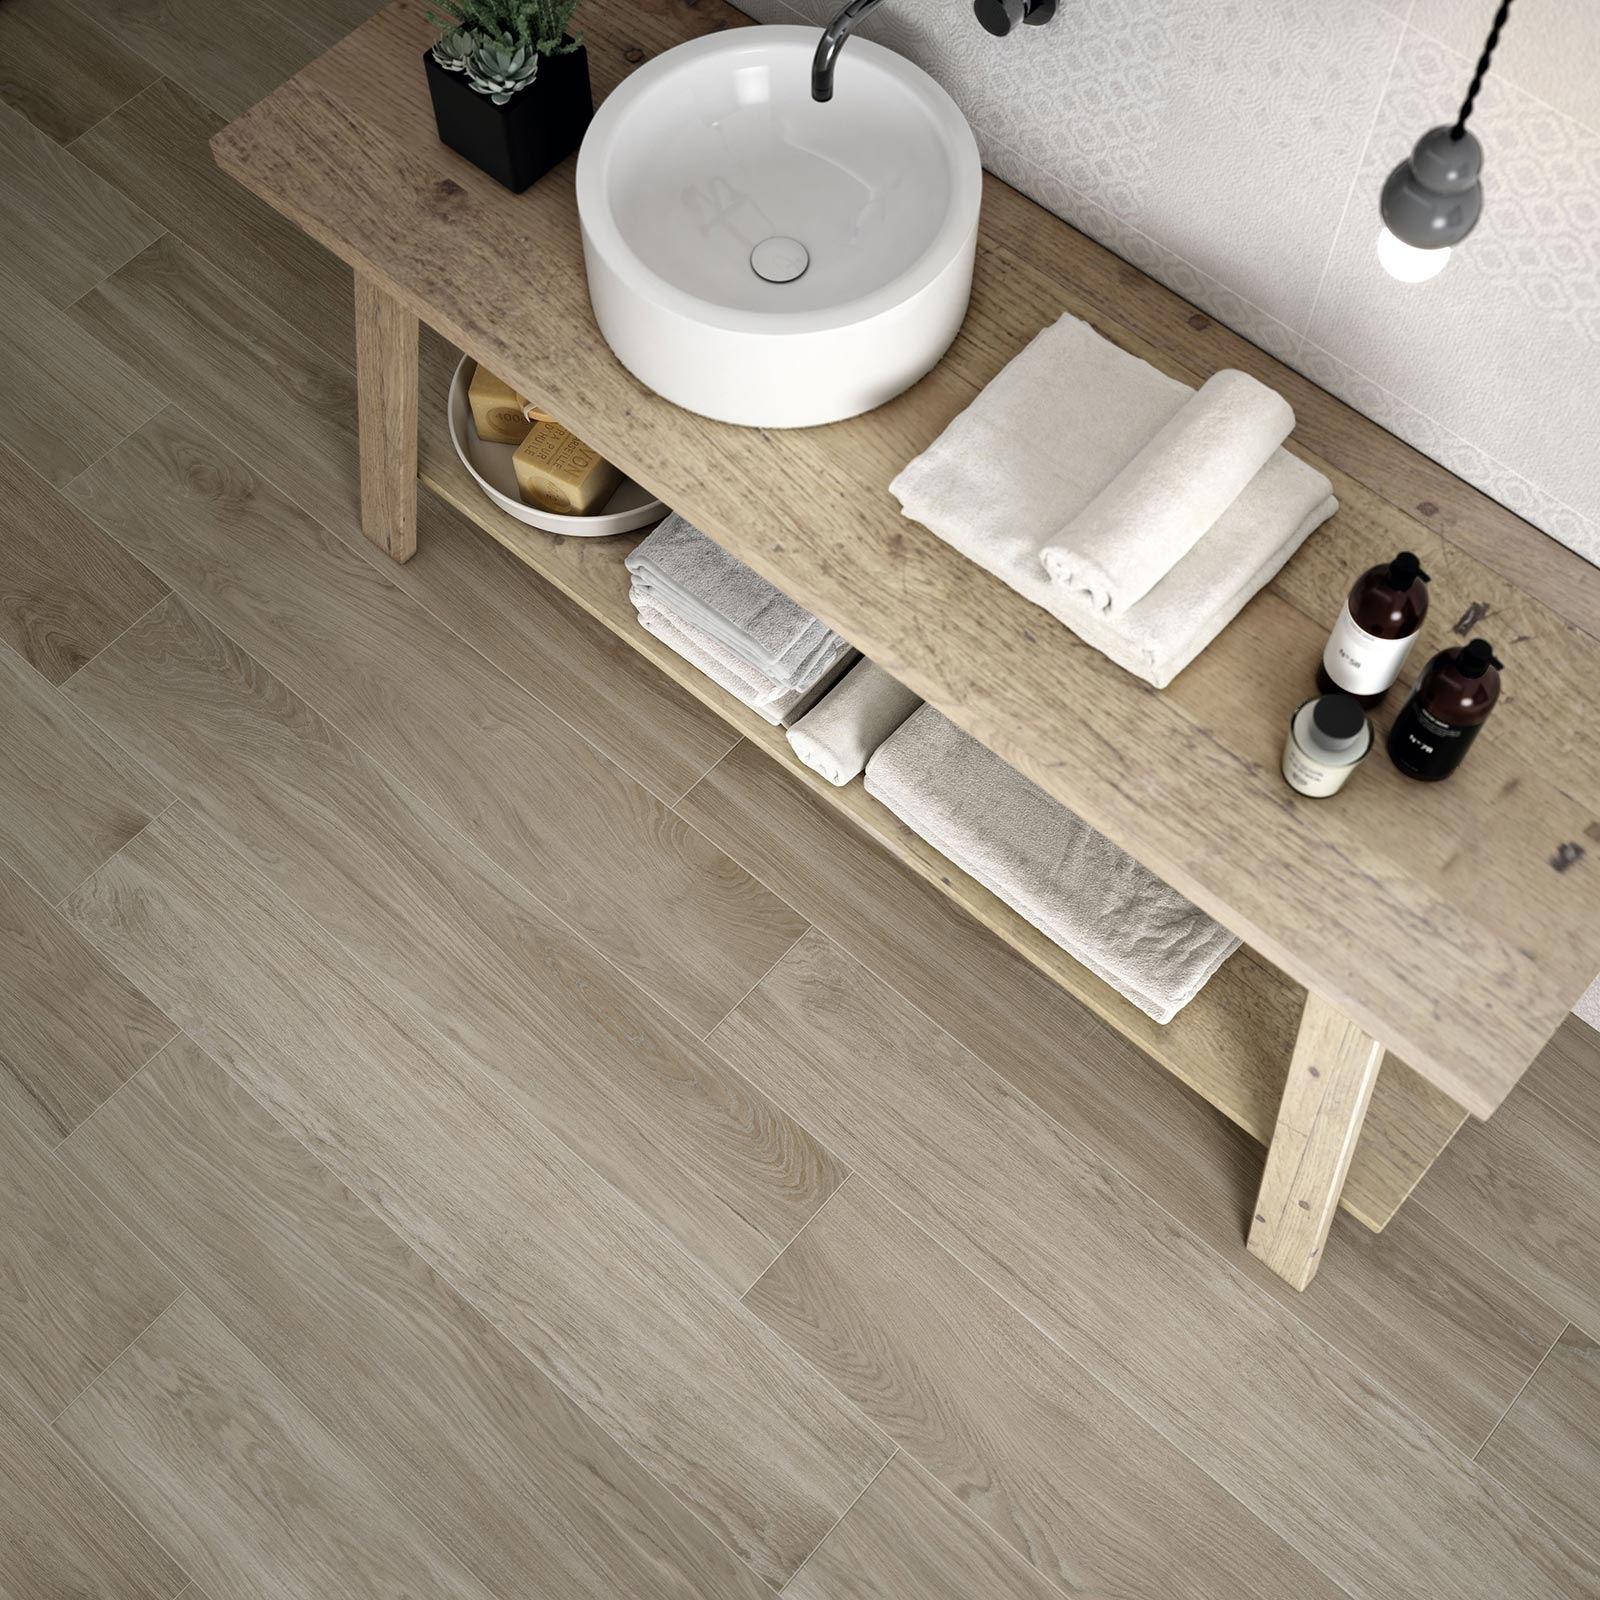 Wood effect and hardwood porcelain stoneware marazzi wood effect and hardwood porcelain stoneware discover all the effects marazzi 7821 dailygadgetfo Image collections